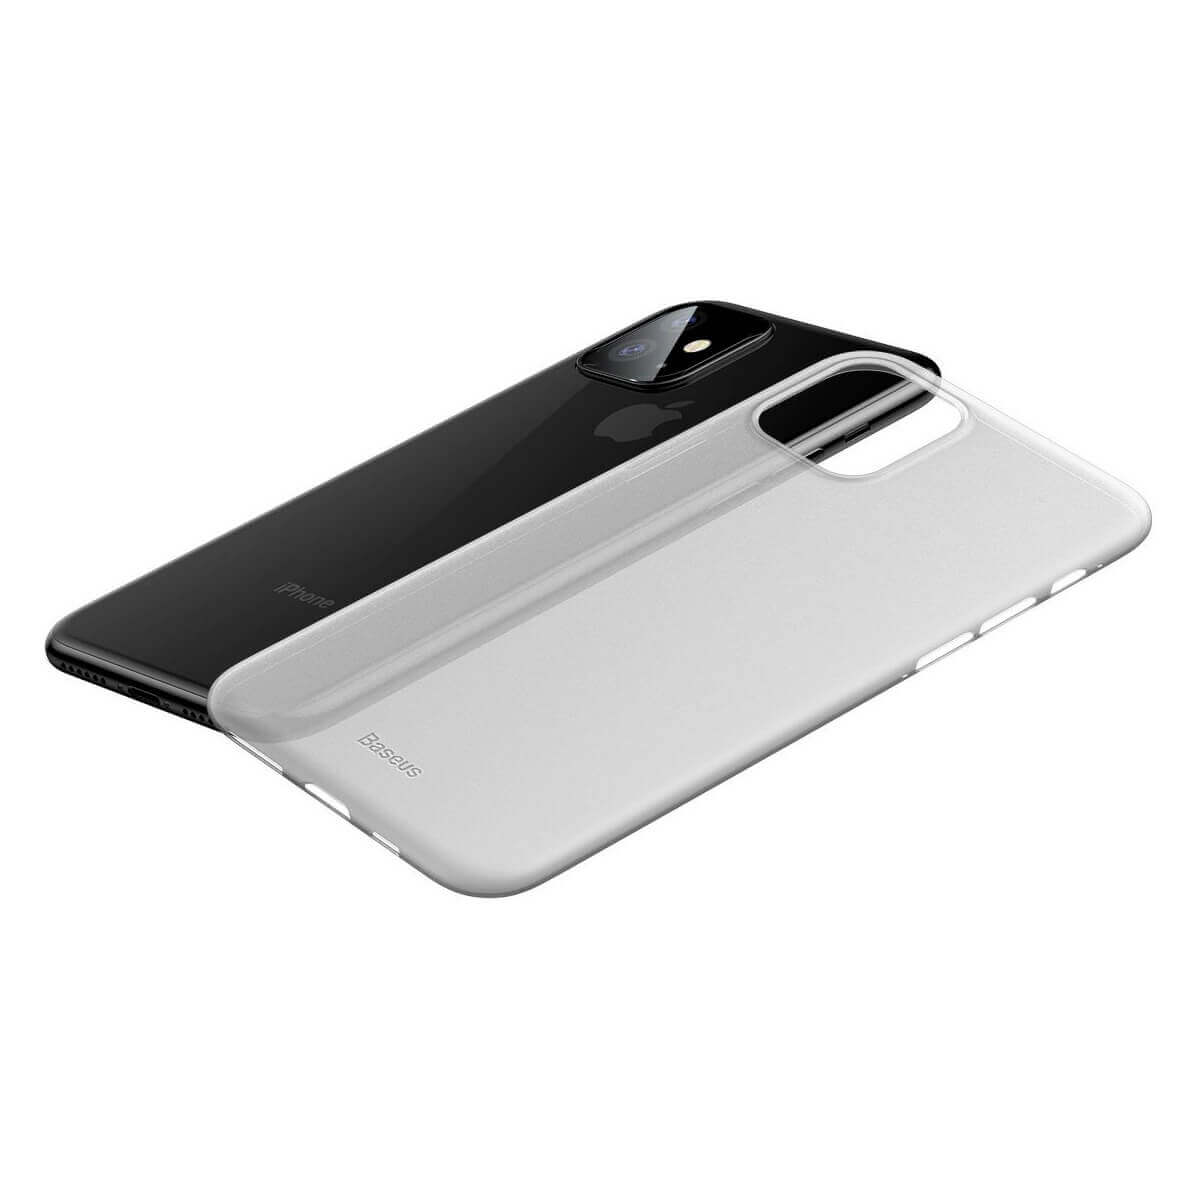 Baseus Wing case — тънък полипропиленов кейс (0.45 mm) за iPhone 11 (бял) - 3